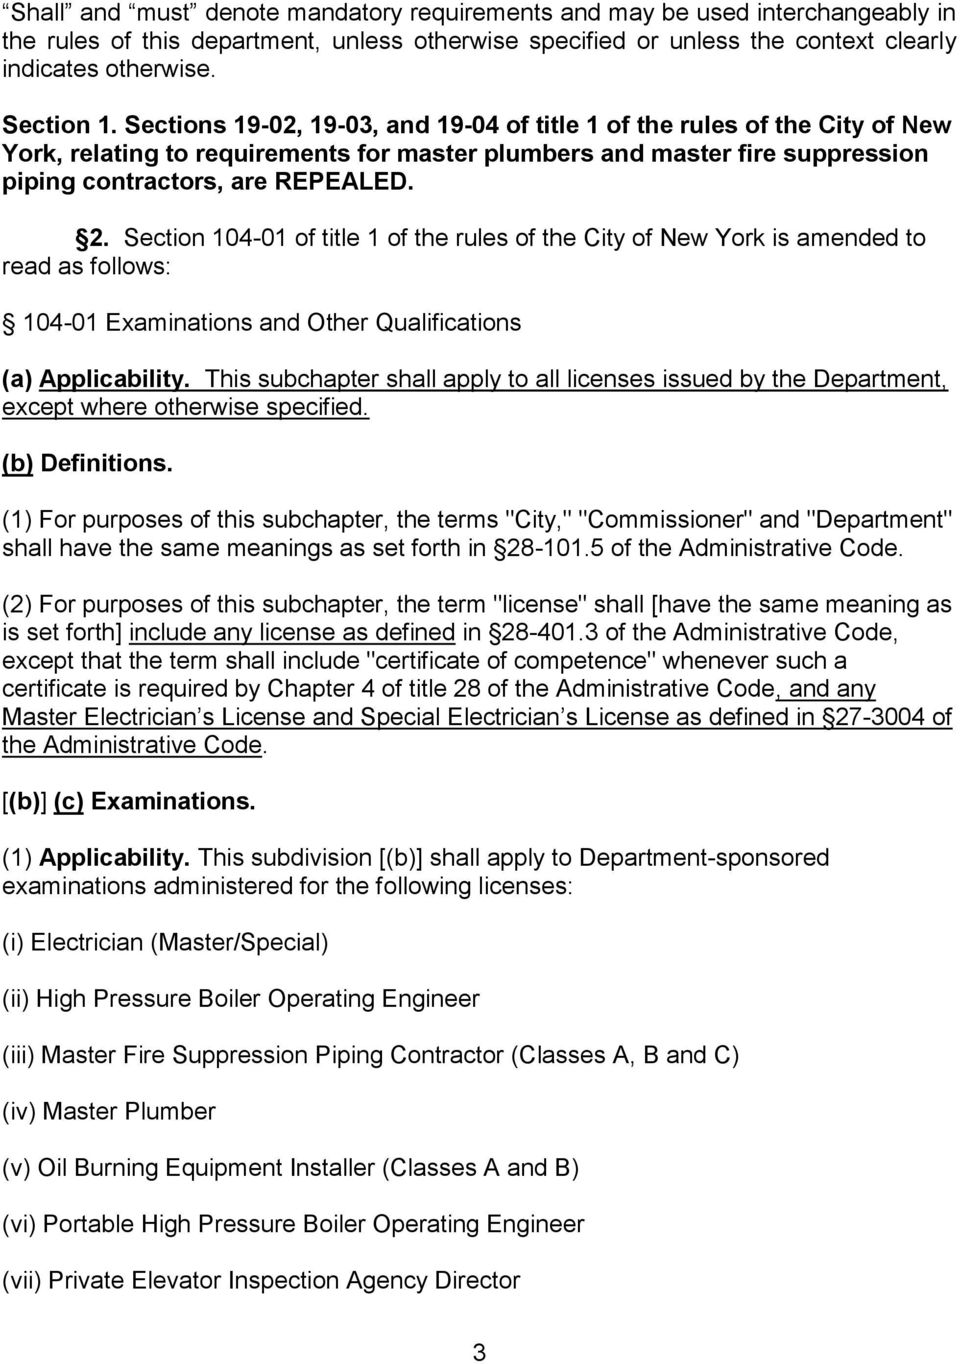 Section 104-01 of title 1 of the rules of the City of New York is amended to read as follows: 104-01 Examinations and Other Qualifications (a) Applicability.